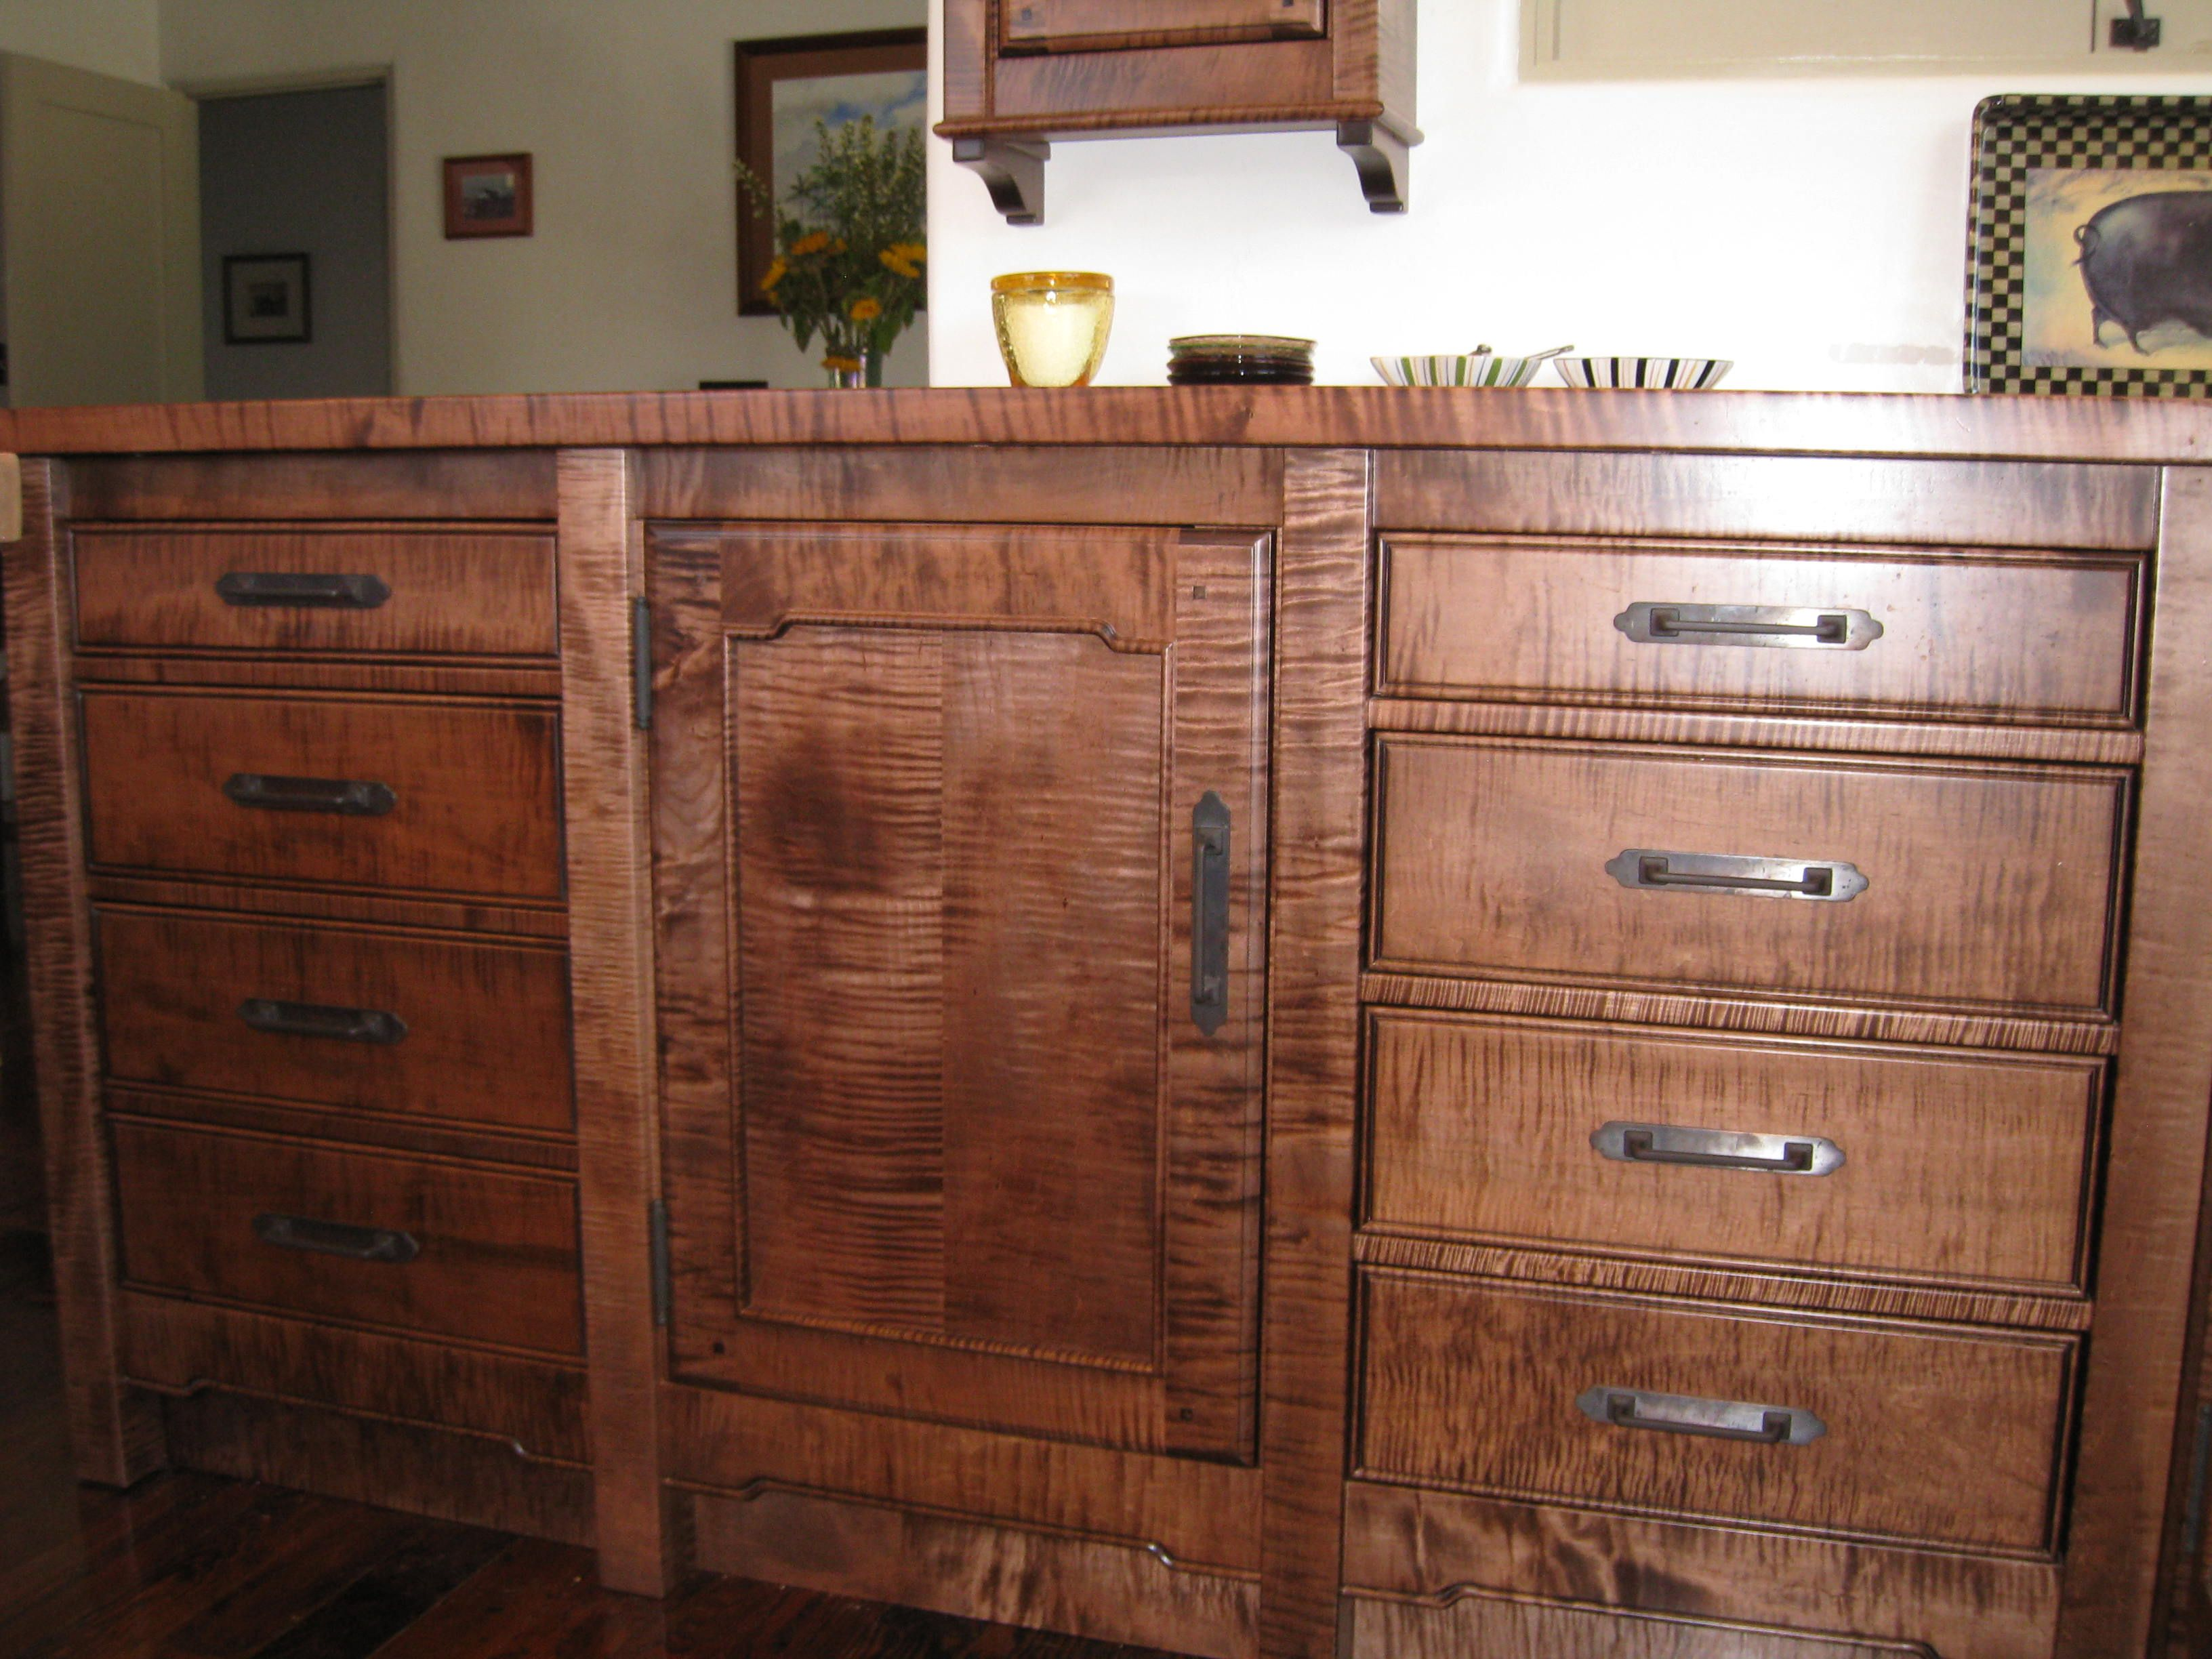 Surprising Close Up Of Cabinetry With Hand Made Copper Backplates For Download Free Architecture Designs Scobabritishbridgeorg